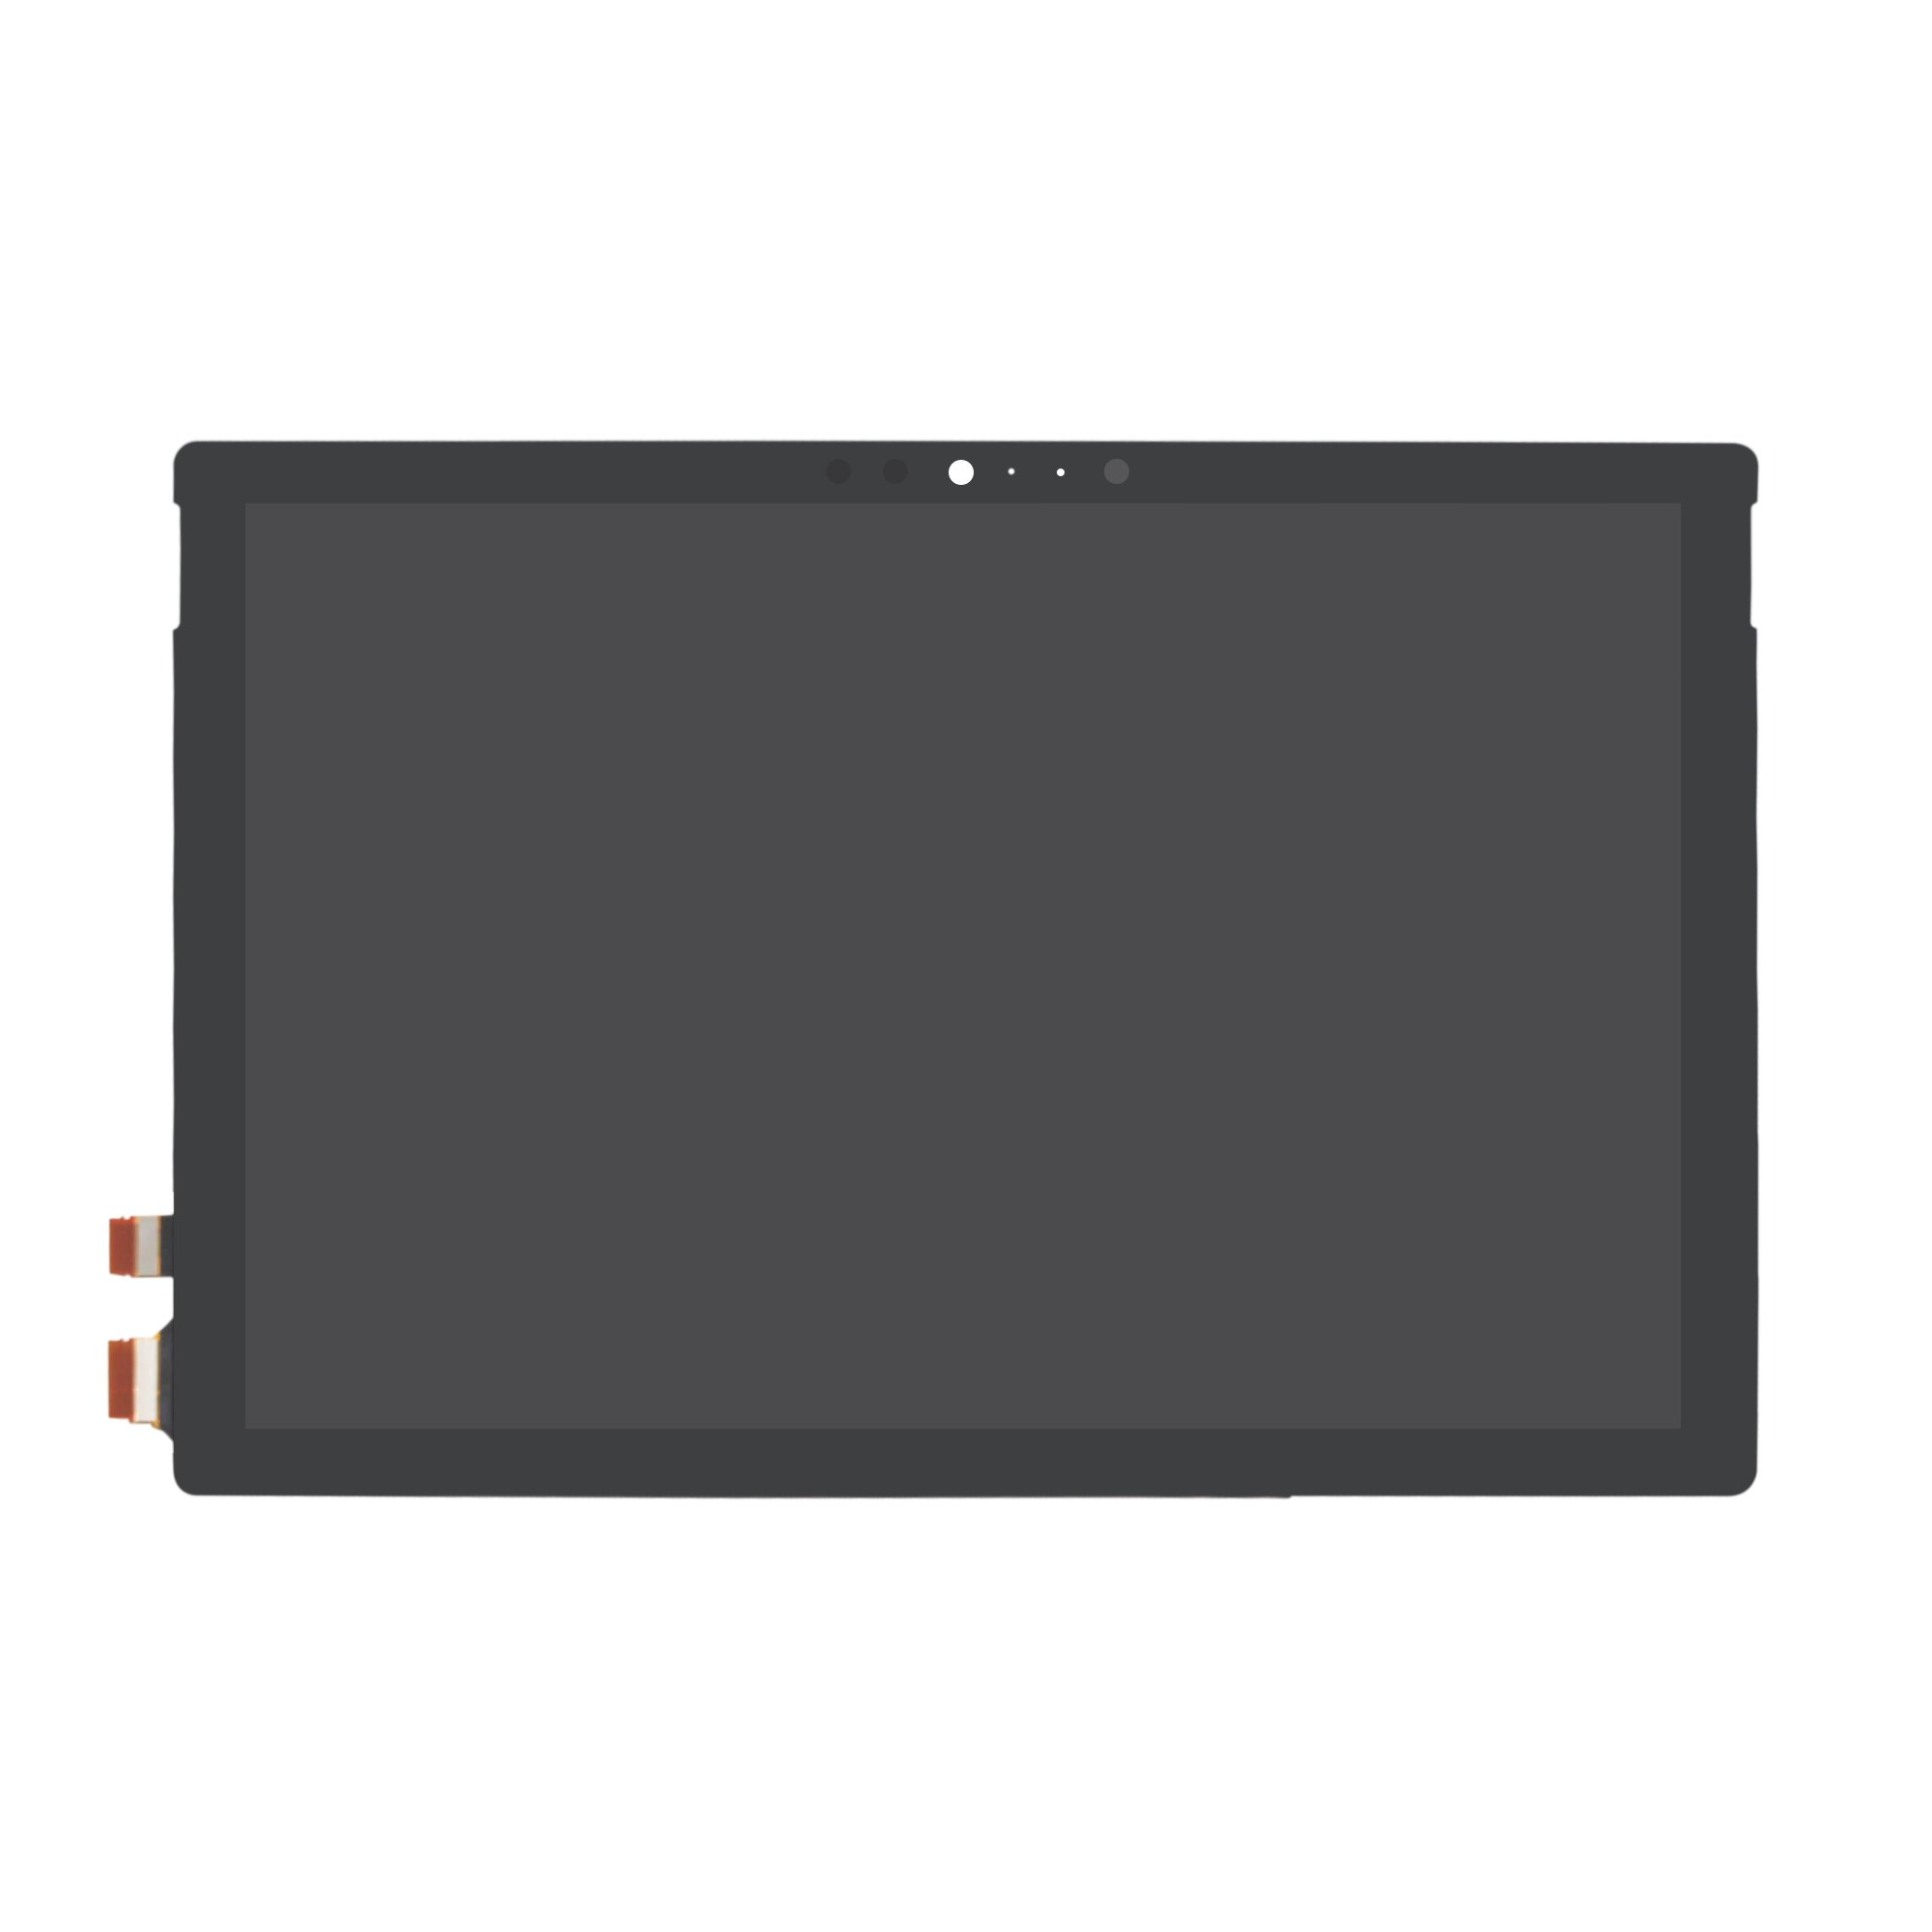 LCDOLED Replacement 12.3 inches 2736x1824 LP123WQ1(SP)(A2) LED LCD Display Touch Screen Digitizer Assembly for Microsoft Surface Pro 5 1796 V1.0 6870S-2403A (with Adhesive)